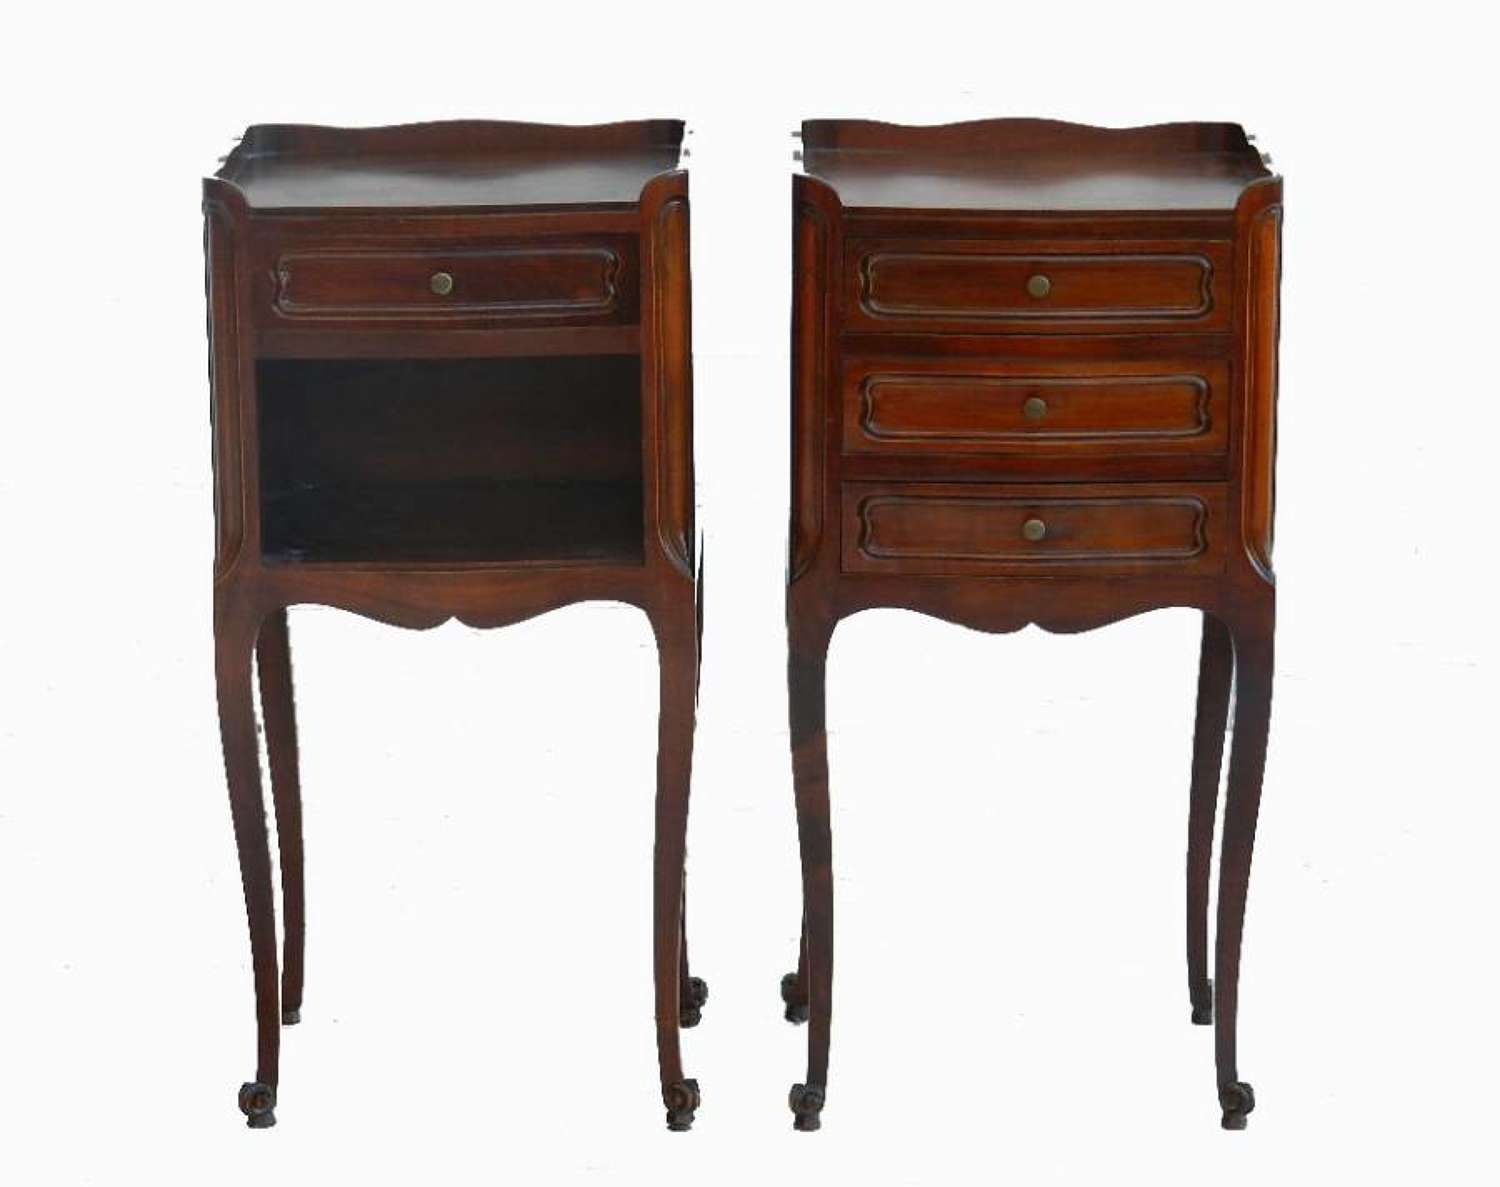 Pair of French Louis revival Bedside Tables Cabinets Nightstands